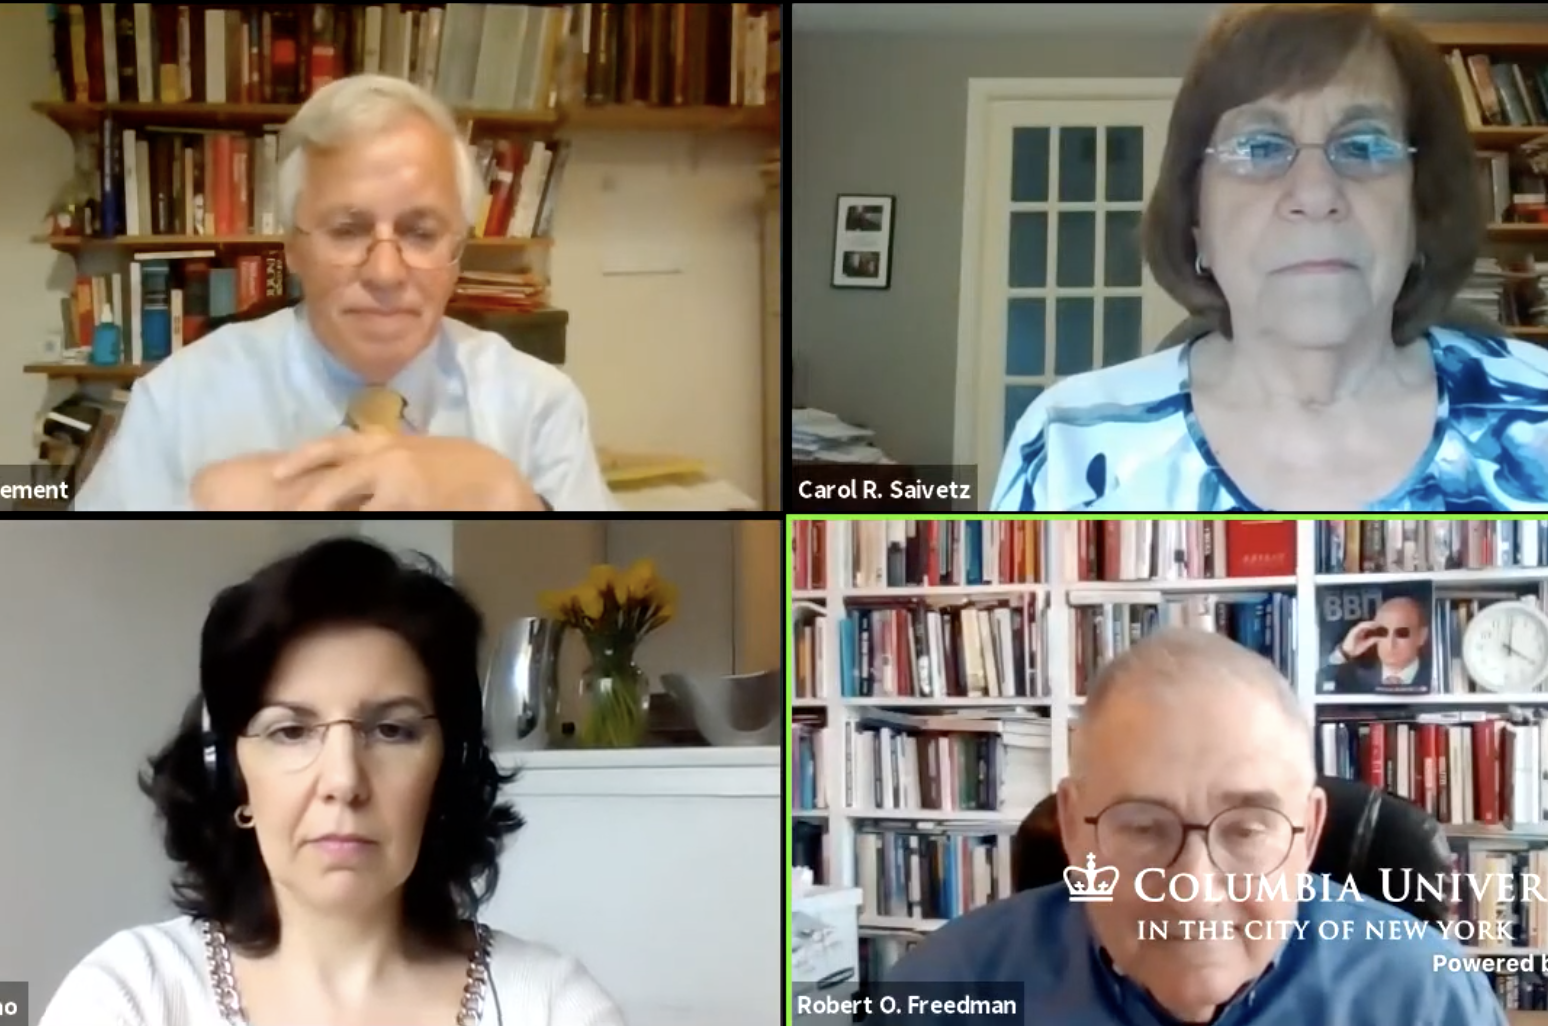 Screen shot of the virtual event featuring the four speakers